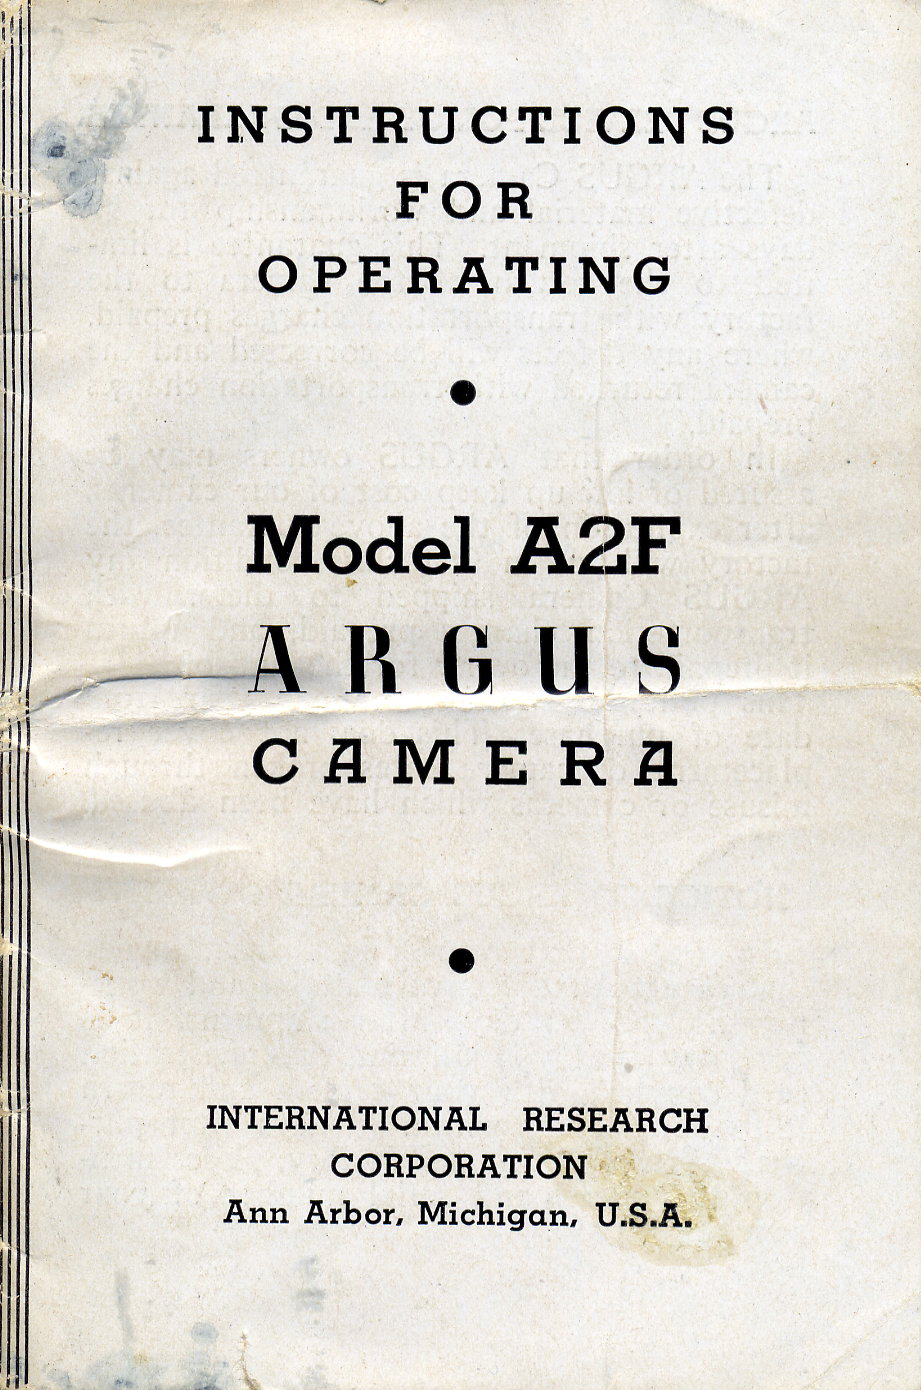 Instructions for Operating Model A2F Argus Camera